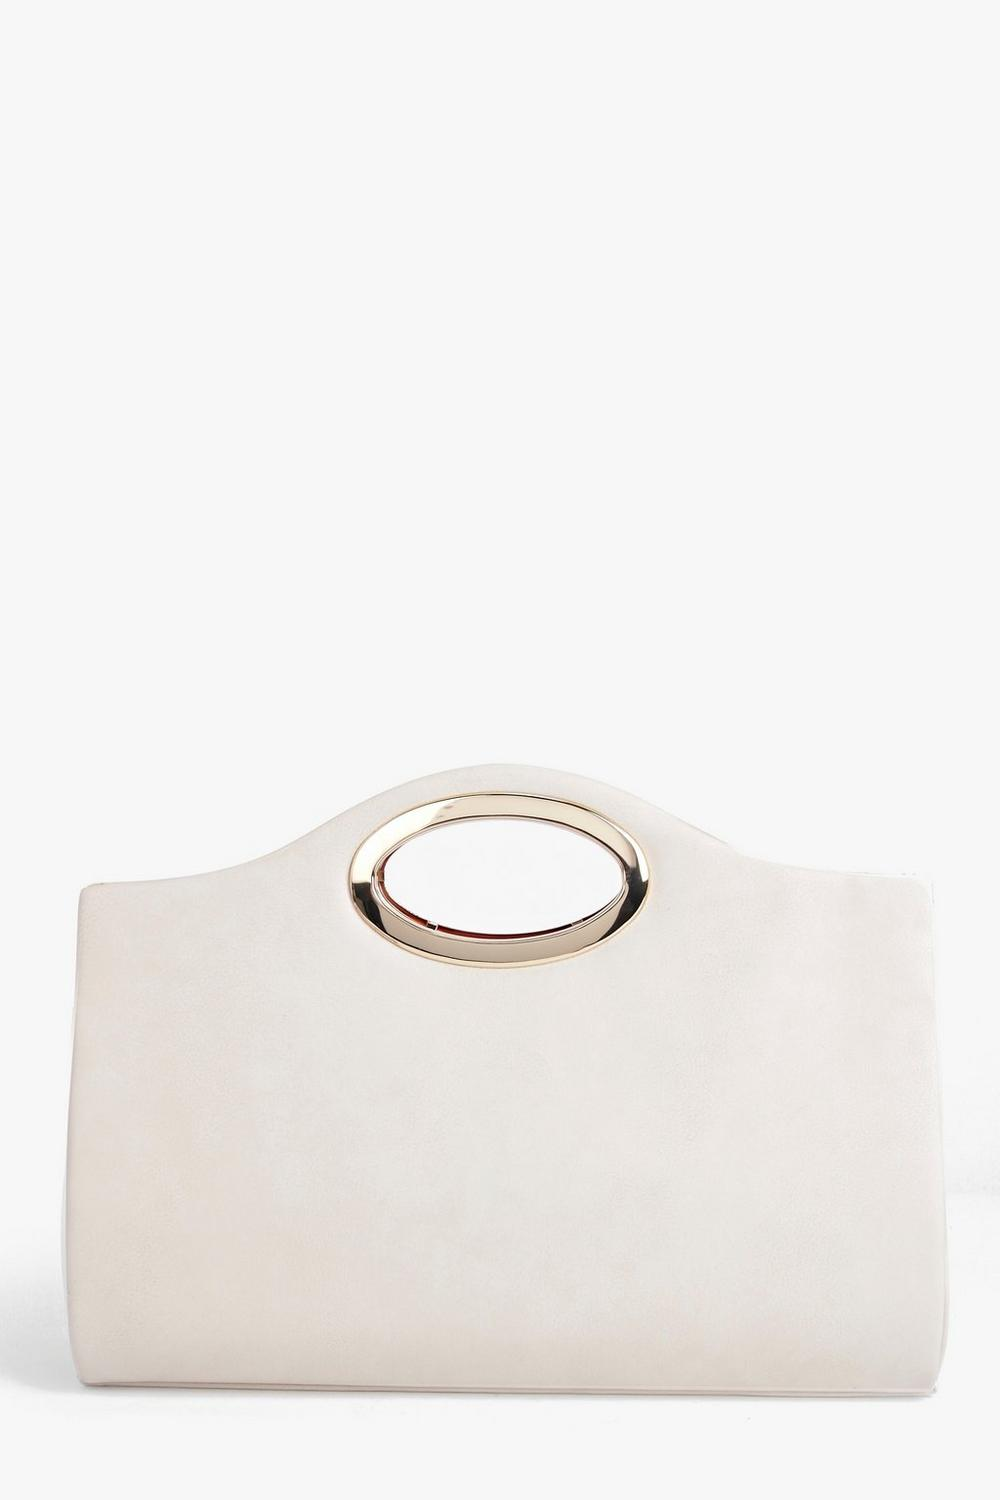 Leah Metal Opening Oversized Clutch Bag